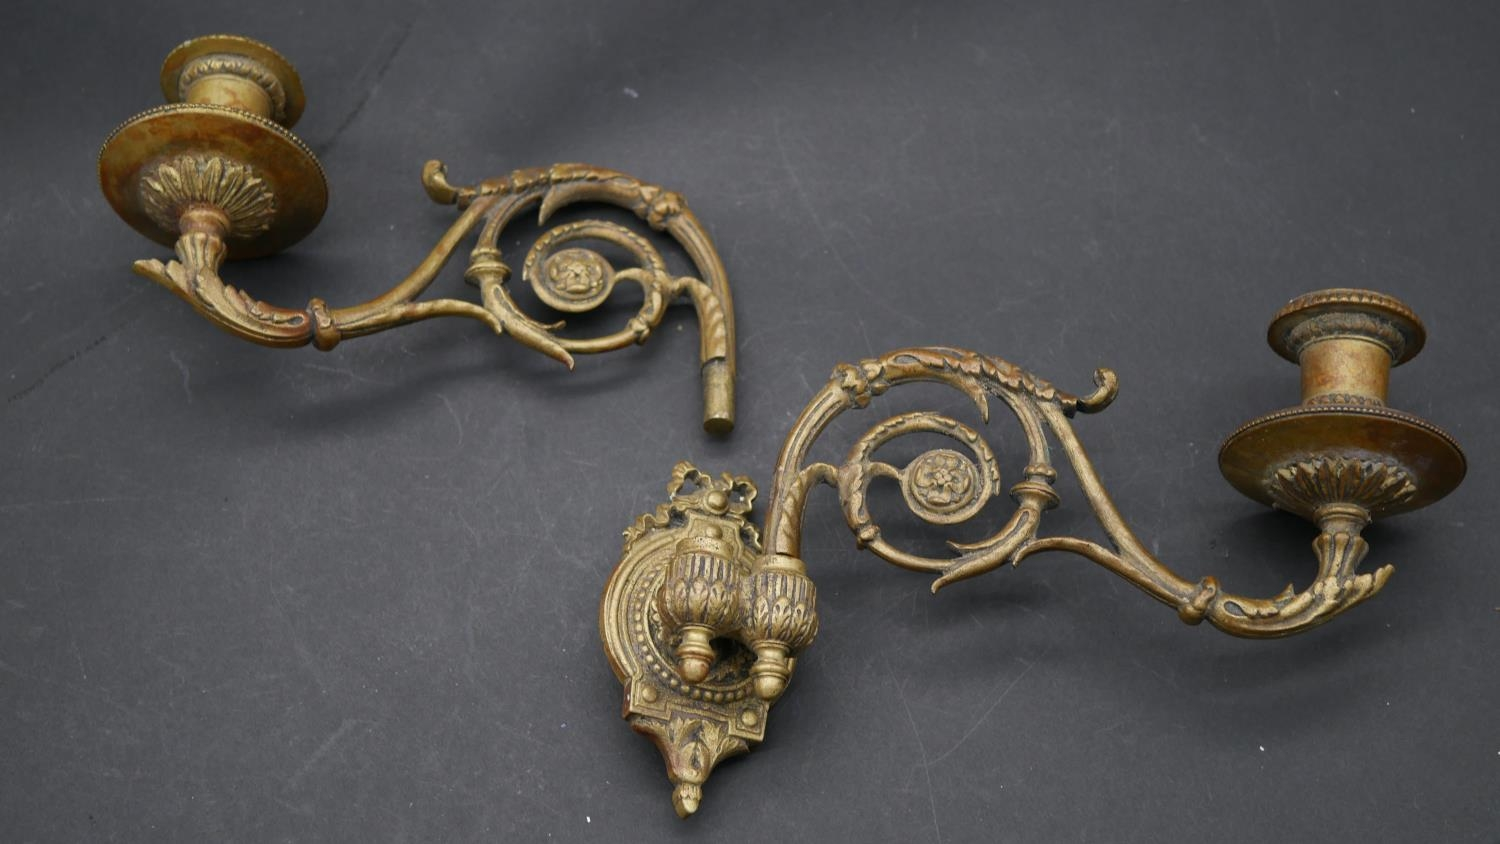 A pair of 19th century style brass twin branch wall sconces with adjustable and removable - Image 9 of 9